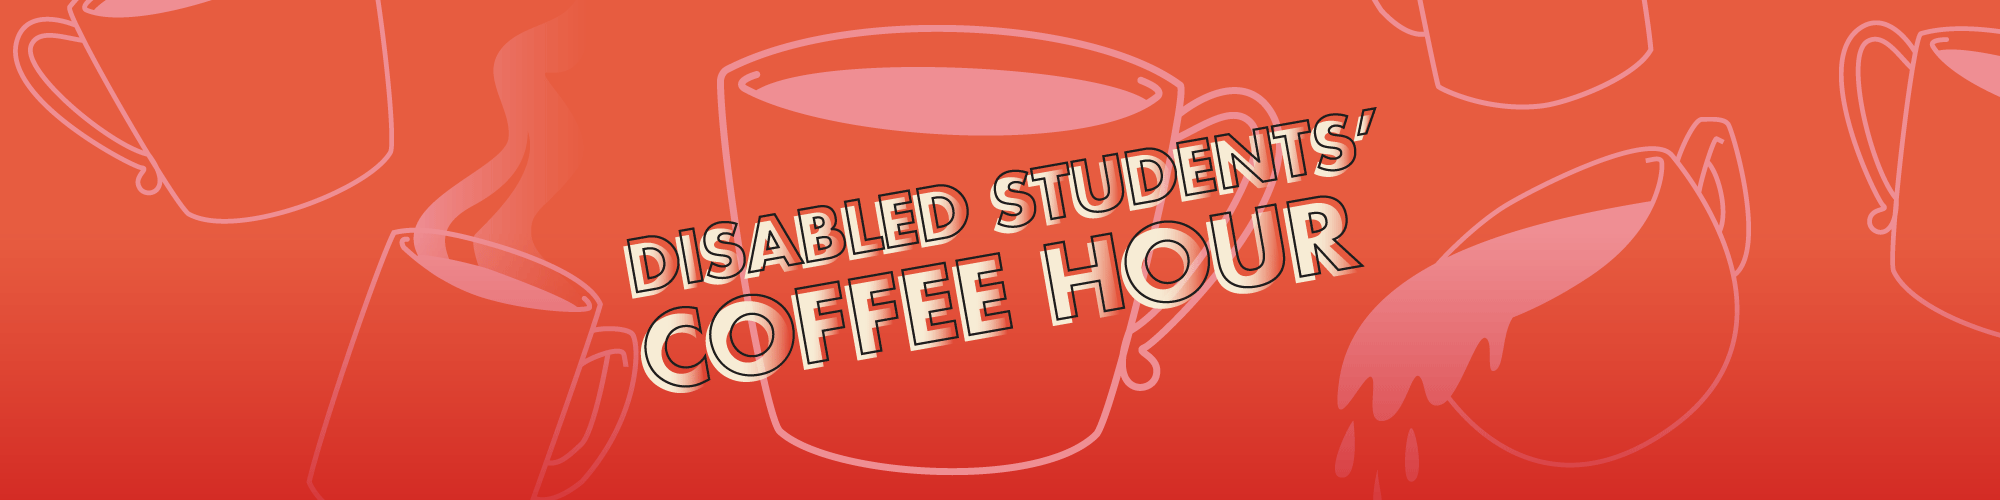 Disabled Students' Coffee Hour